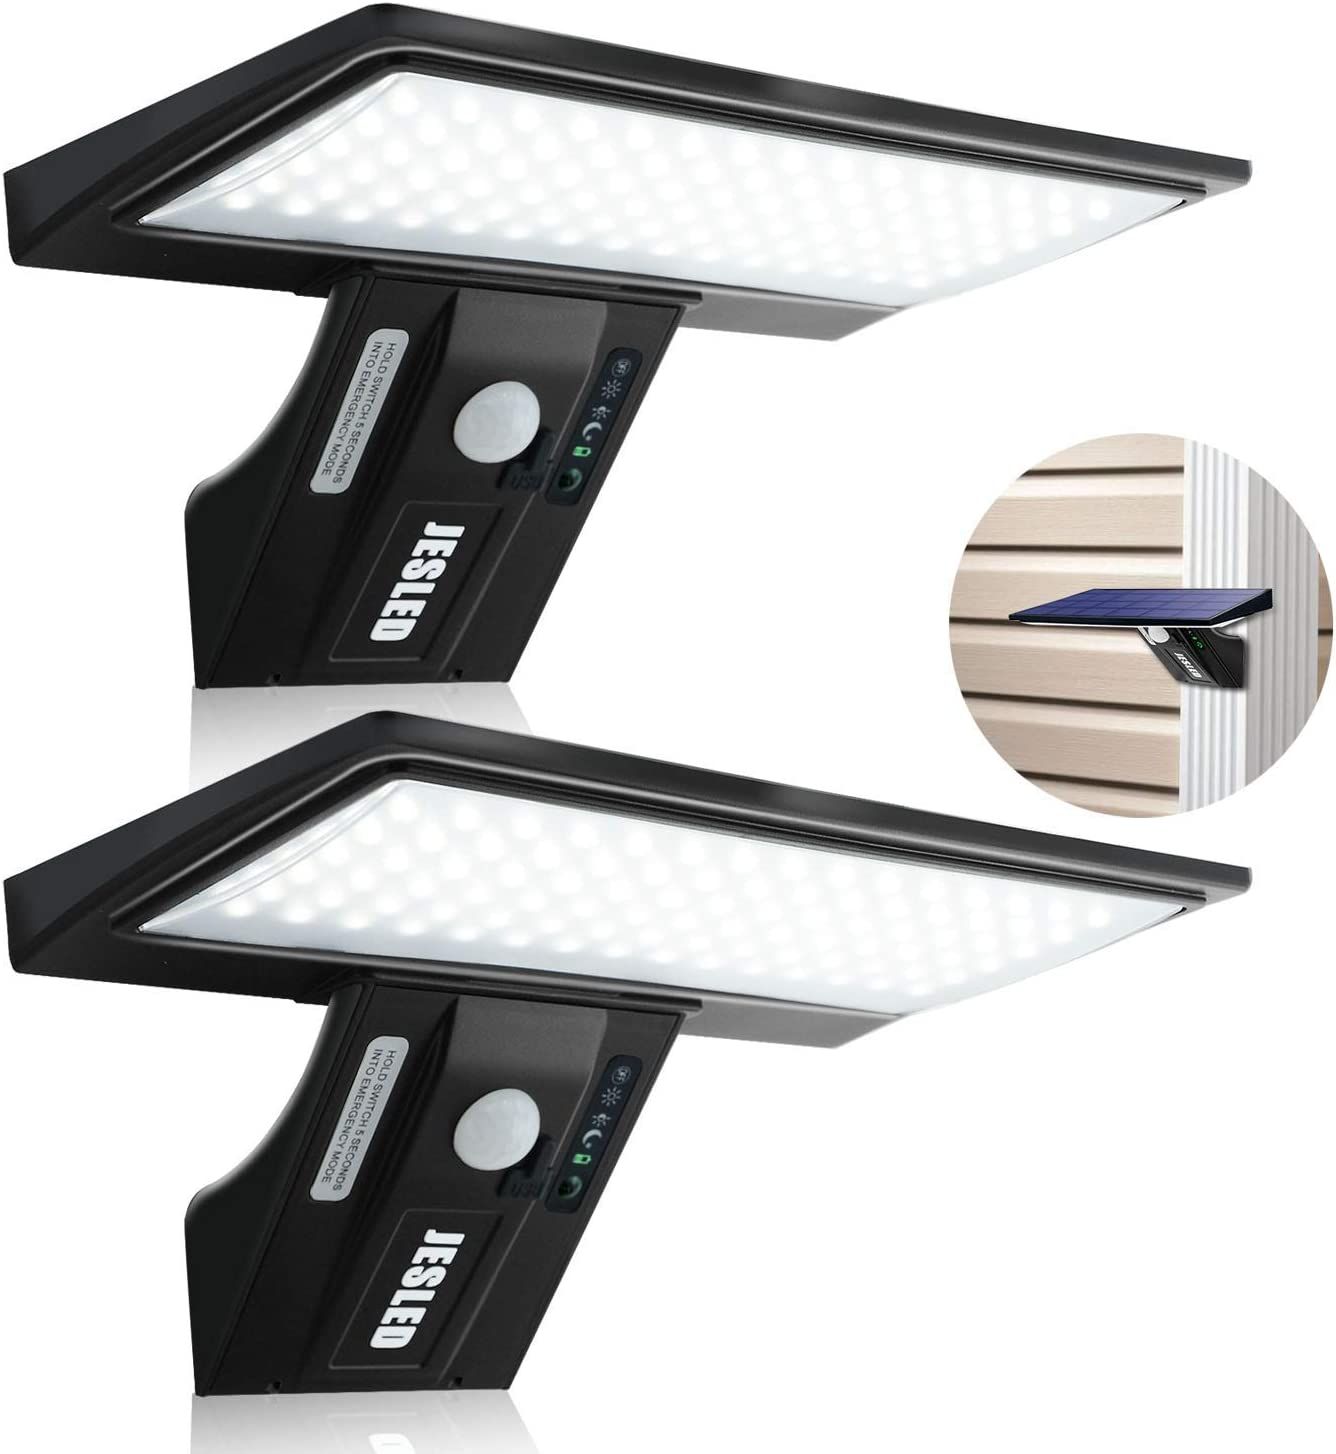 (2 Pack)JESLED Solar Flood Lights Outdoor Motion Sensor, 90 LED Solar Powered Exterior Wall Security Light Waterproof for Garden Yard Patio Dusk-to-Dawn, Bright White USB Charging & Emergency Lighting